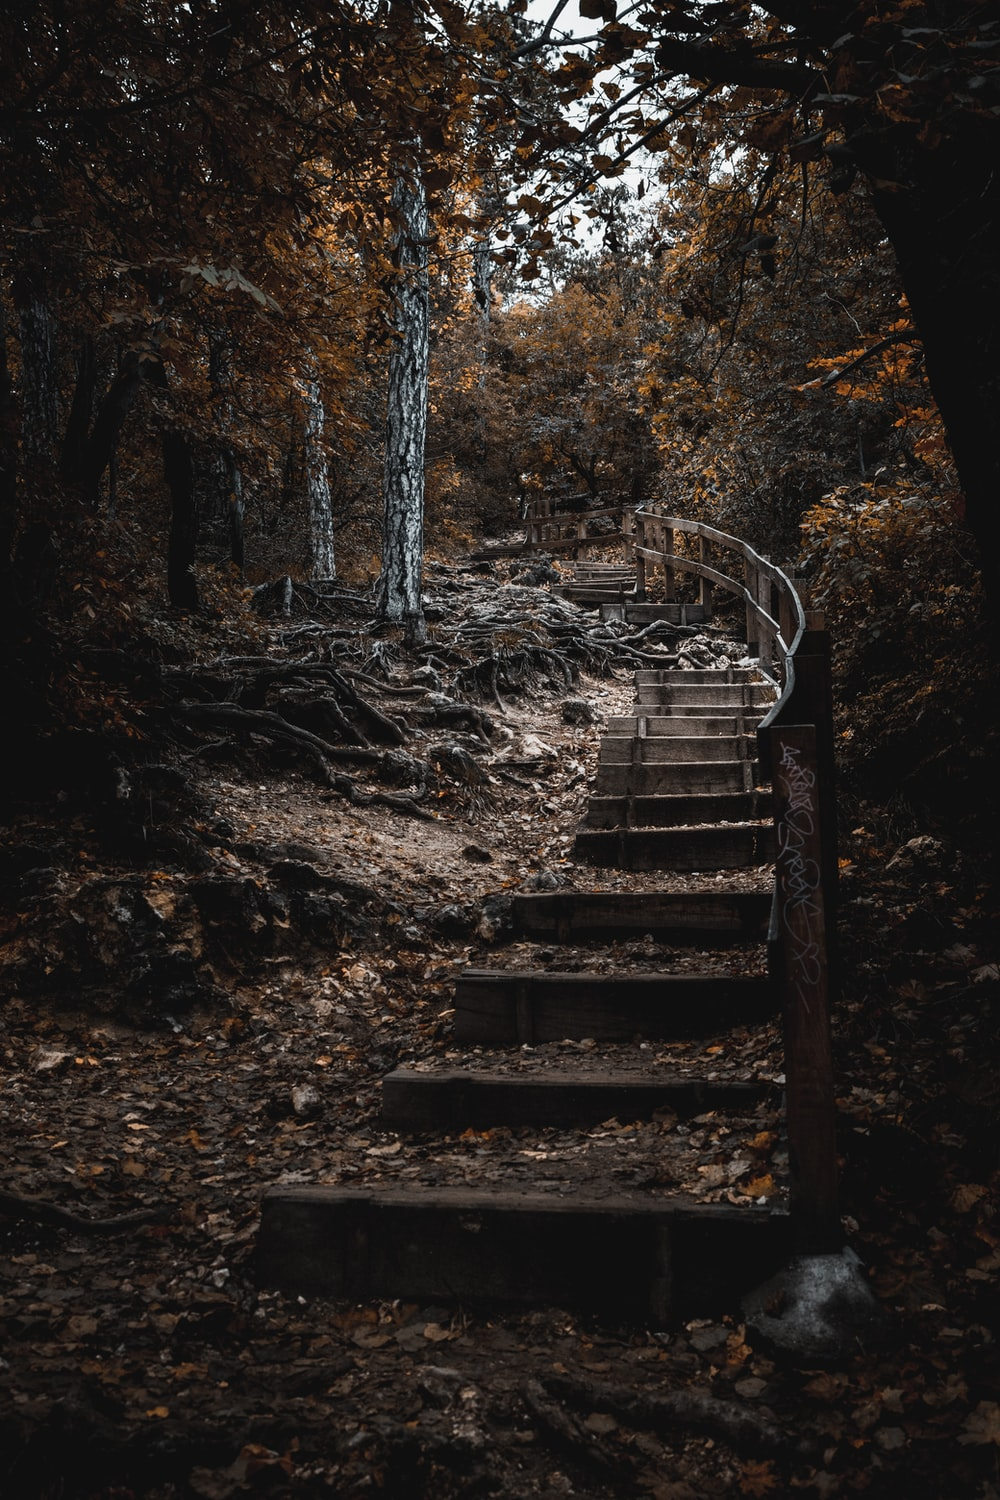 Brown Wooden Staircase In The Woods Photo Free Ground Image On Unsplash